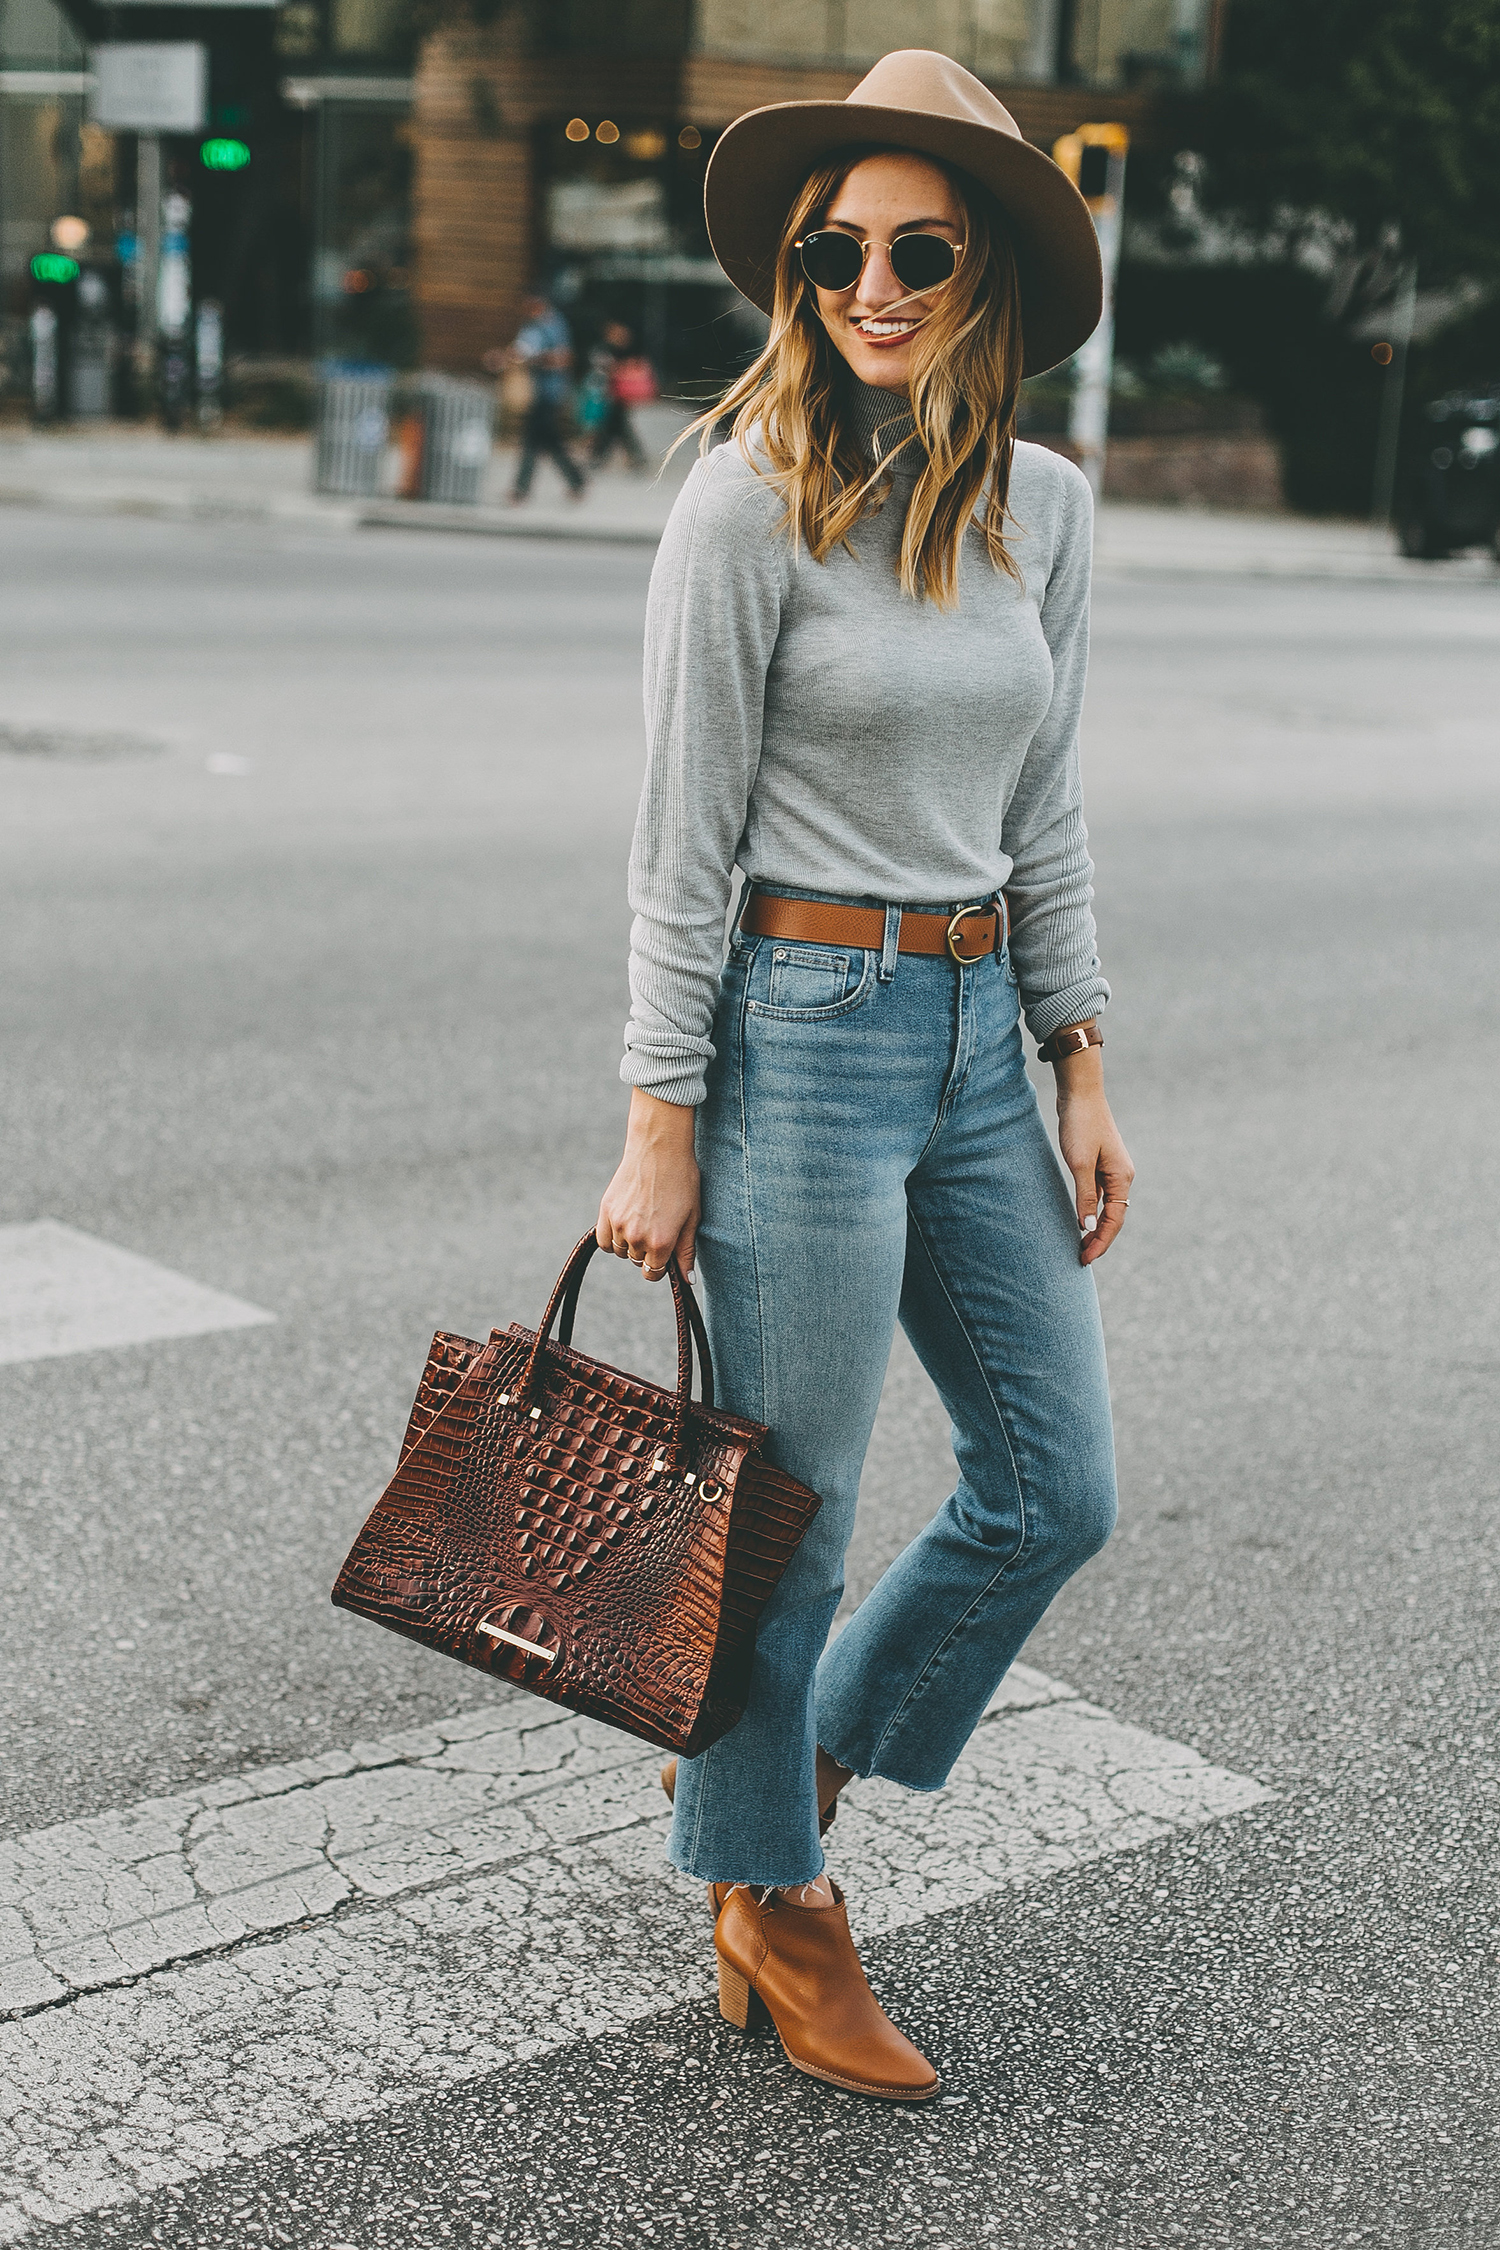 livvyland-blog-olivia-watson-south-congress-avenue-austin-texas-fashion-life-style-blogger-bdg-high-waist-crop-flare-jeans-7